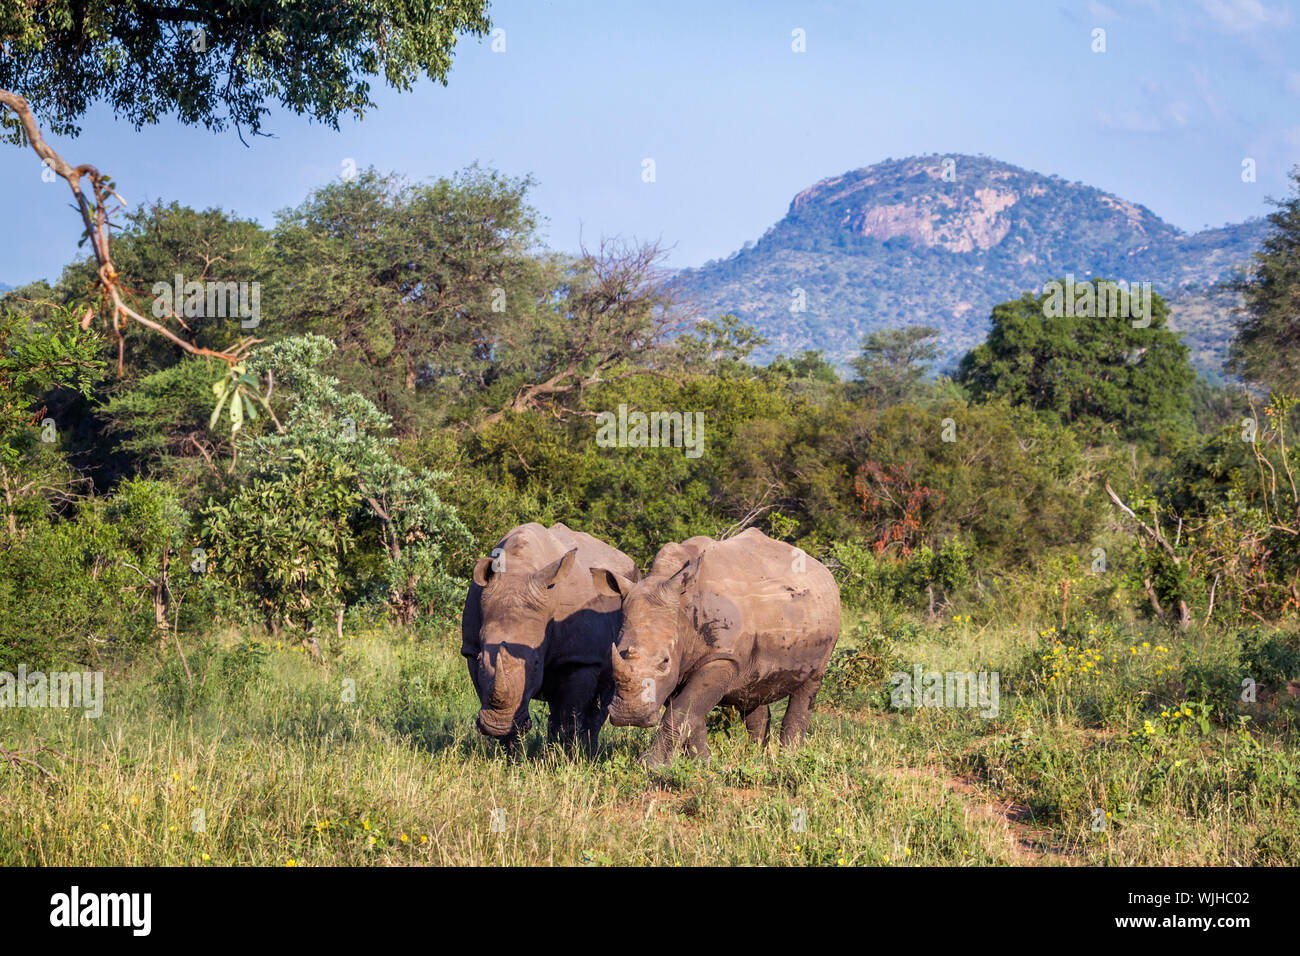 Two Southern white rhinoceros in green mountain scenery in Kruger National park, South Africa ; Specie Ceratotherium simum simum family of Rhinoceroti Stock Photo